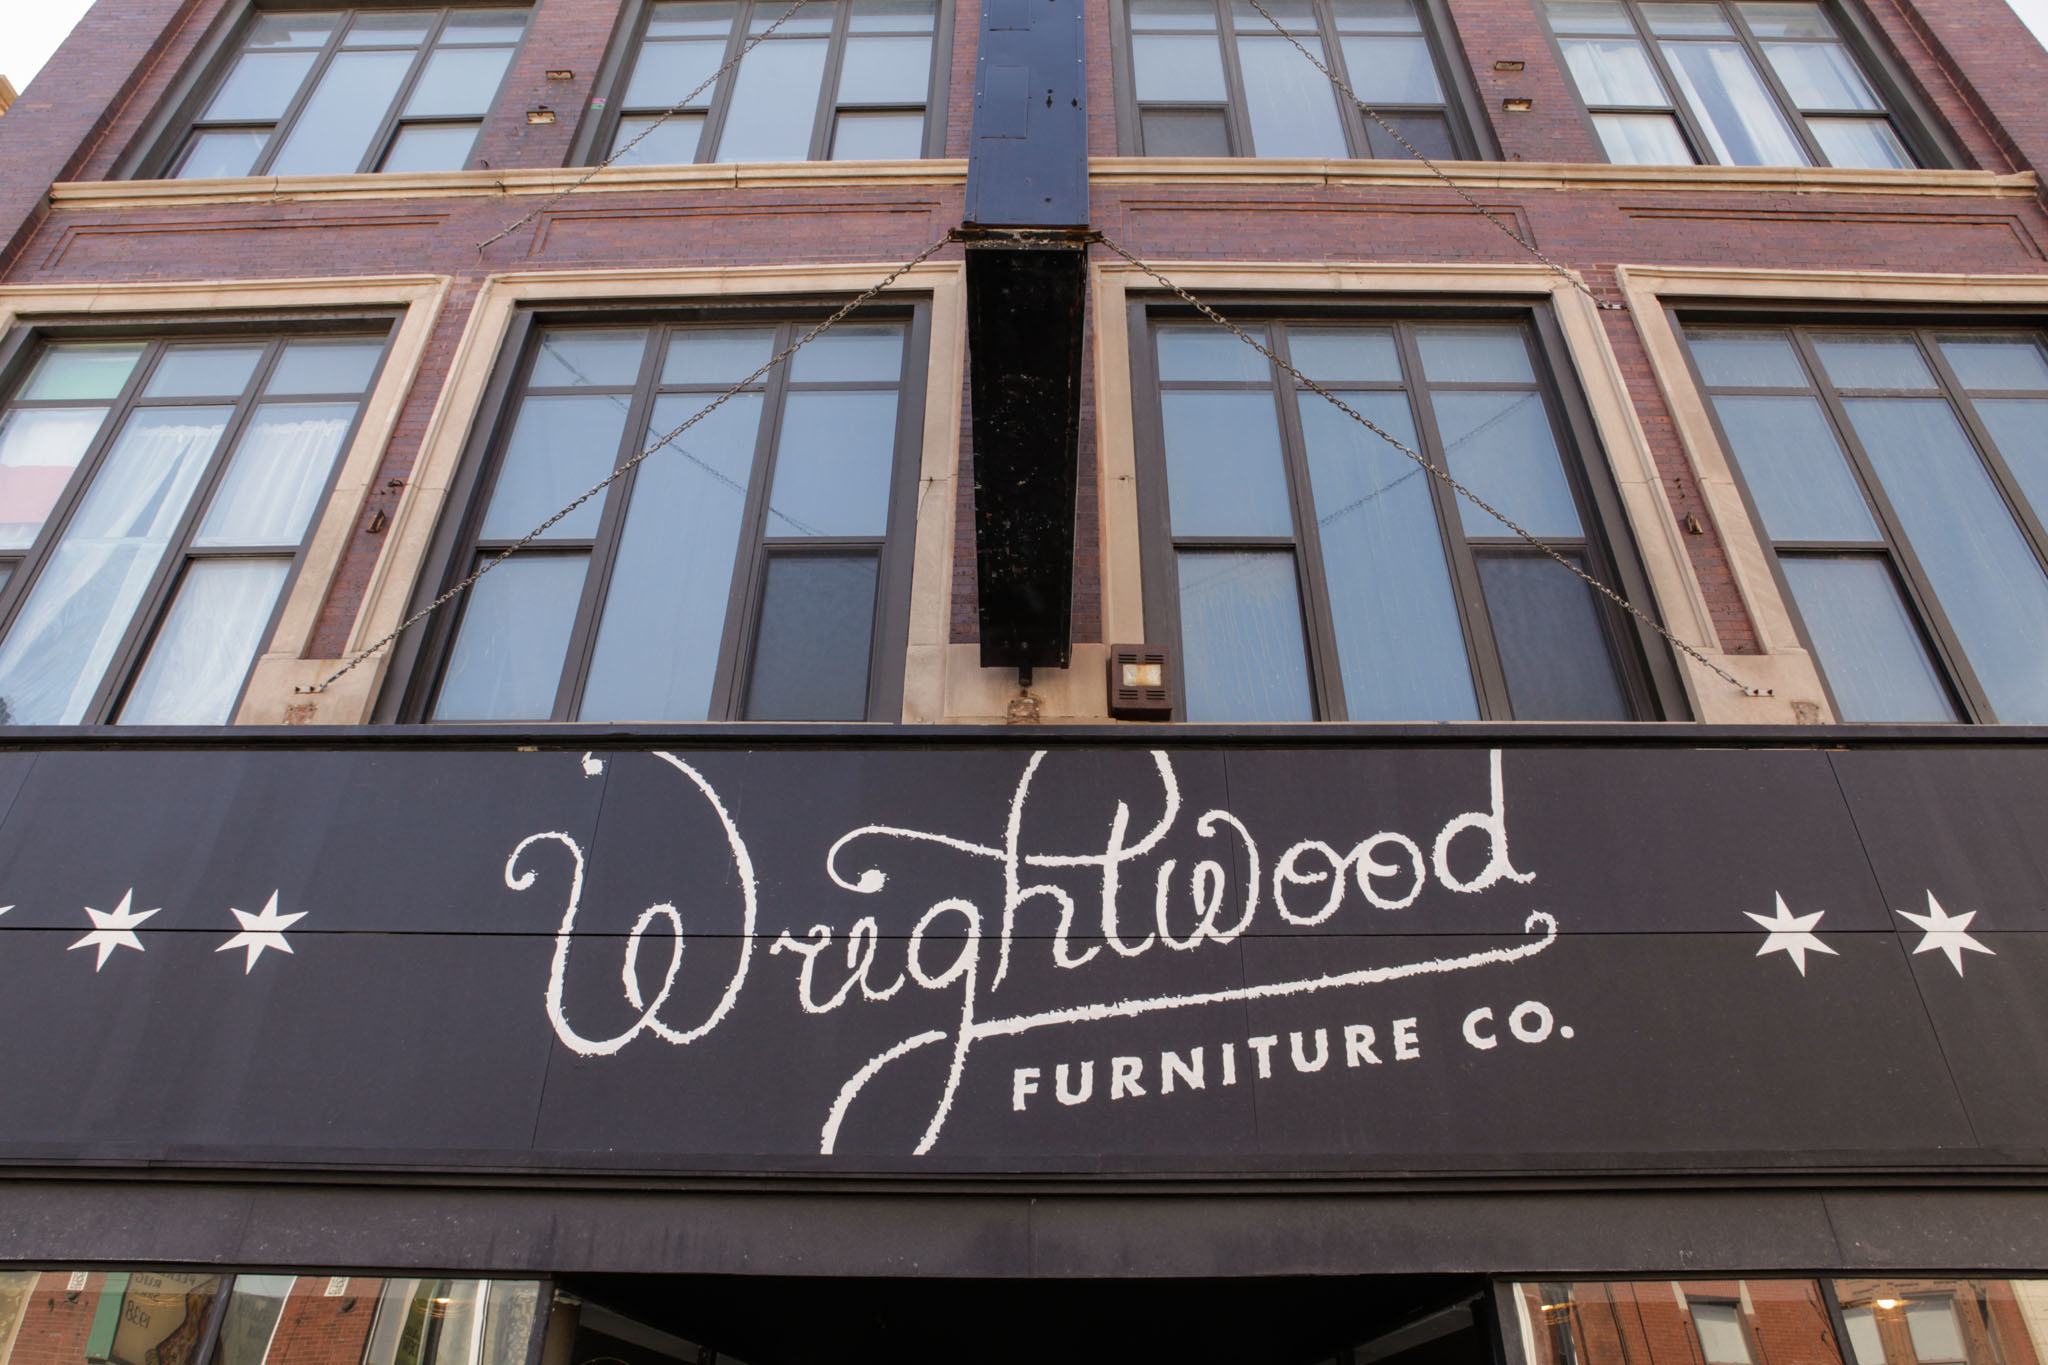 Wrightwood Furniture. Furniture stores in Chicago for home goods and home decor